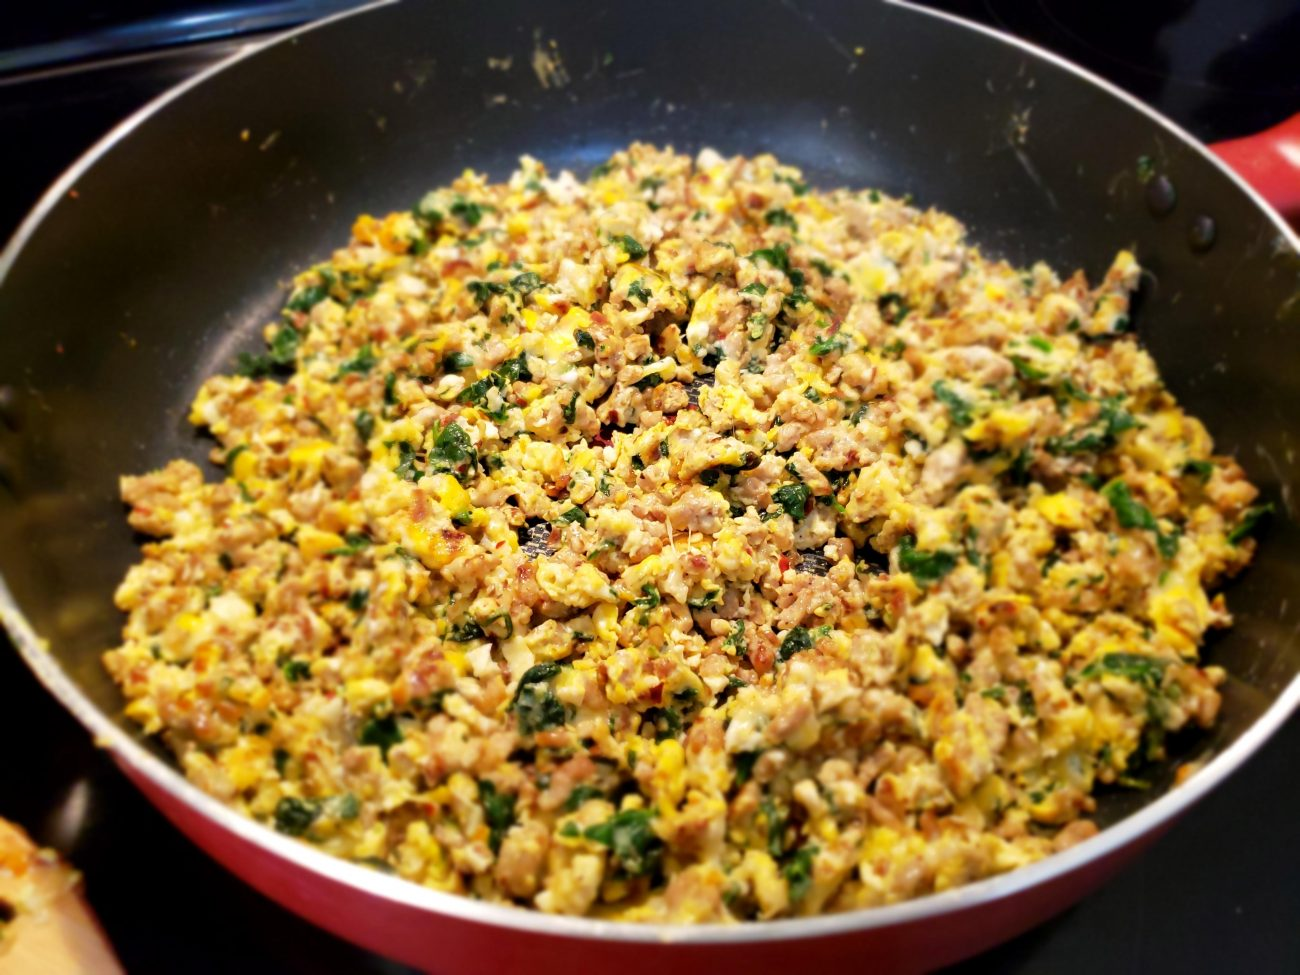 Ground Turkey, Spinach and Eggs